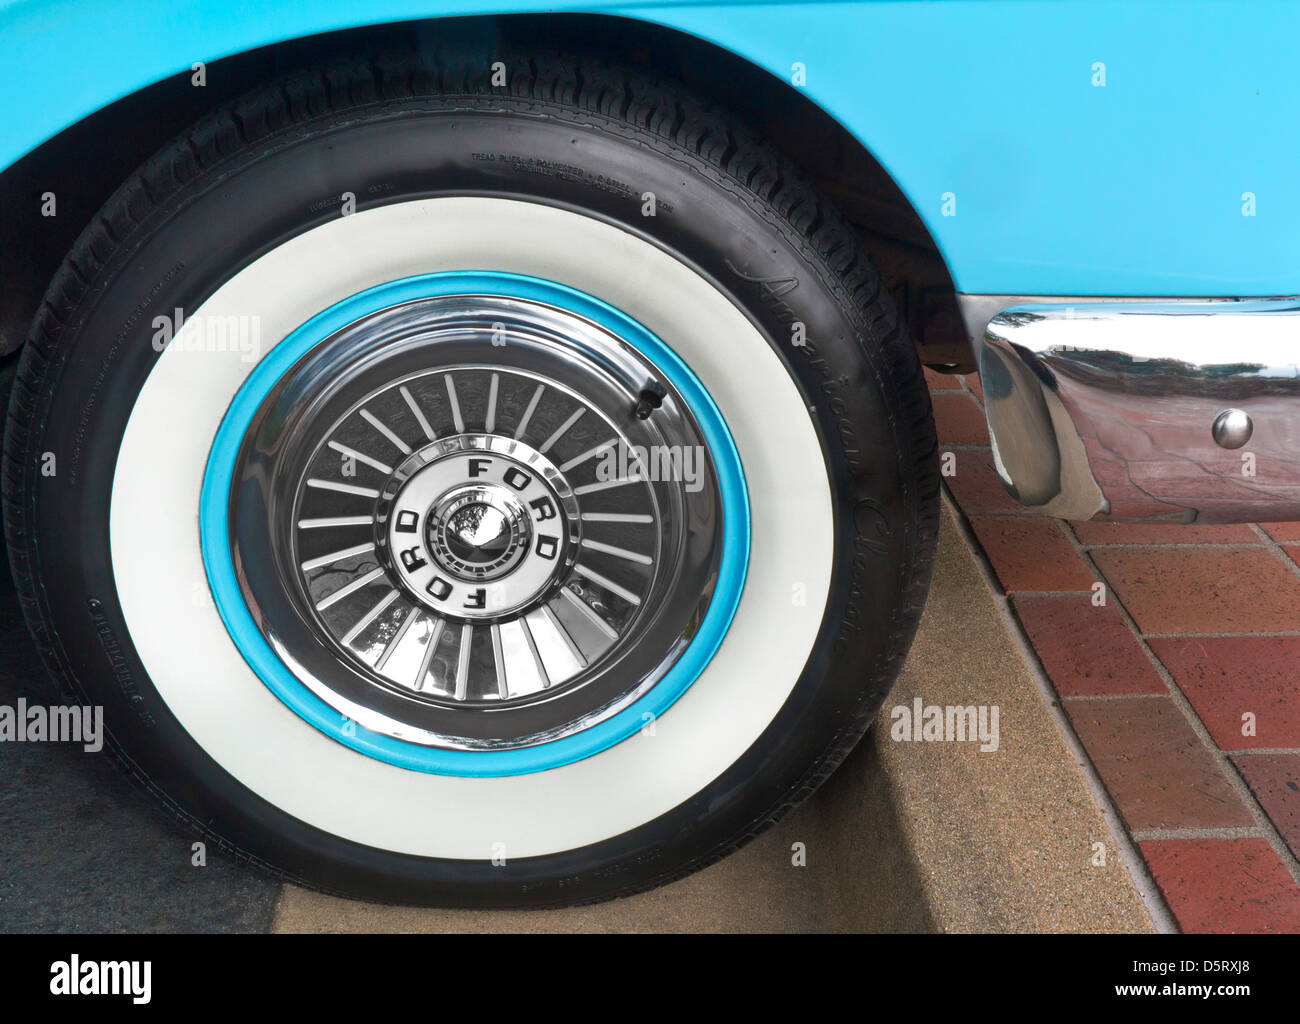 Detail on 1950's Ford Fairlane Skyliner American classic motor chrome wheel cap and whitewall tyre - Stock Image